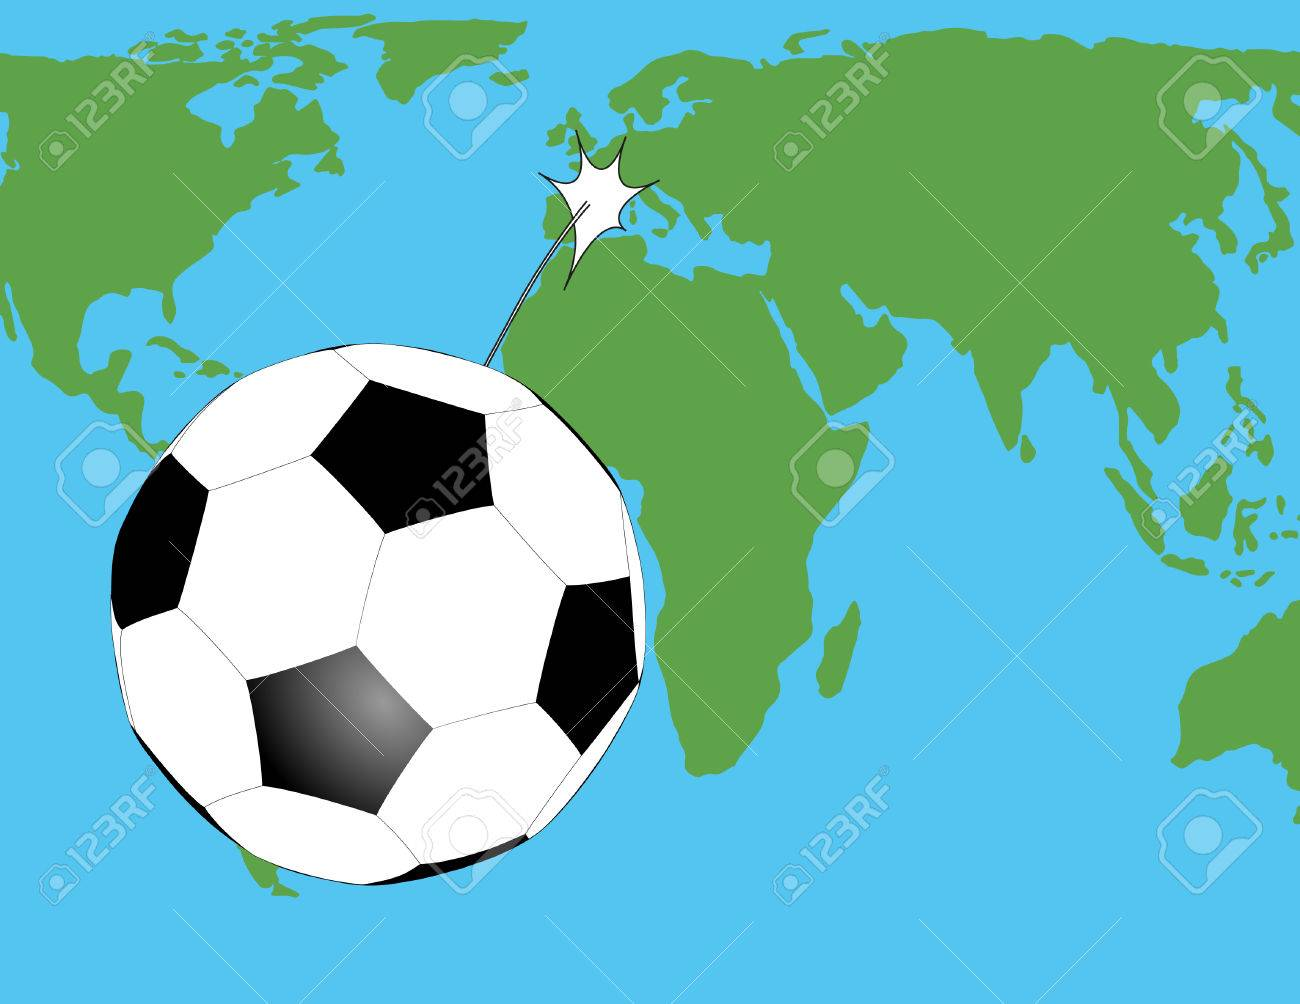 Soccer ball flying over the world map royalty free cliparts vectors soccer ball flying over the world map stock vector 54335387 gumiabroncs Gallery